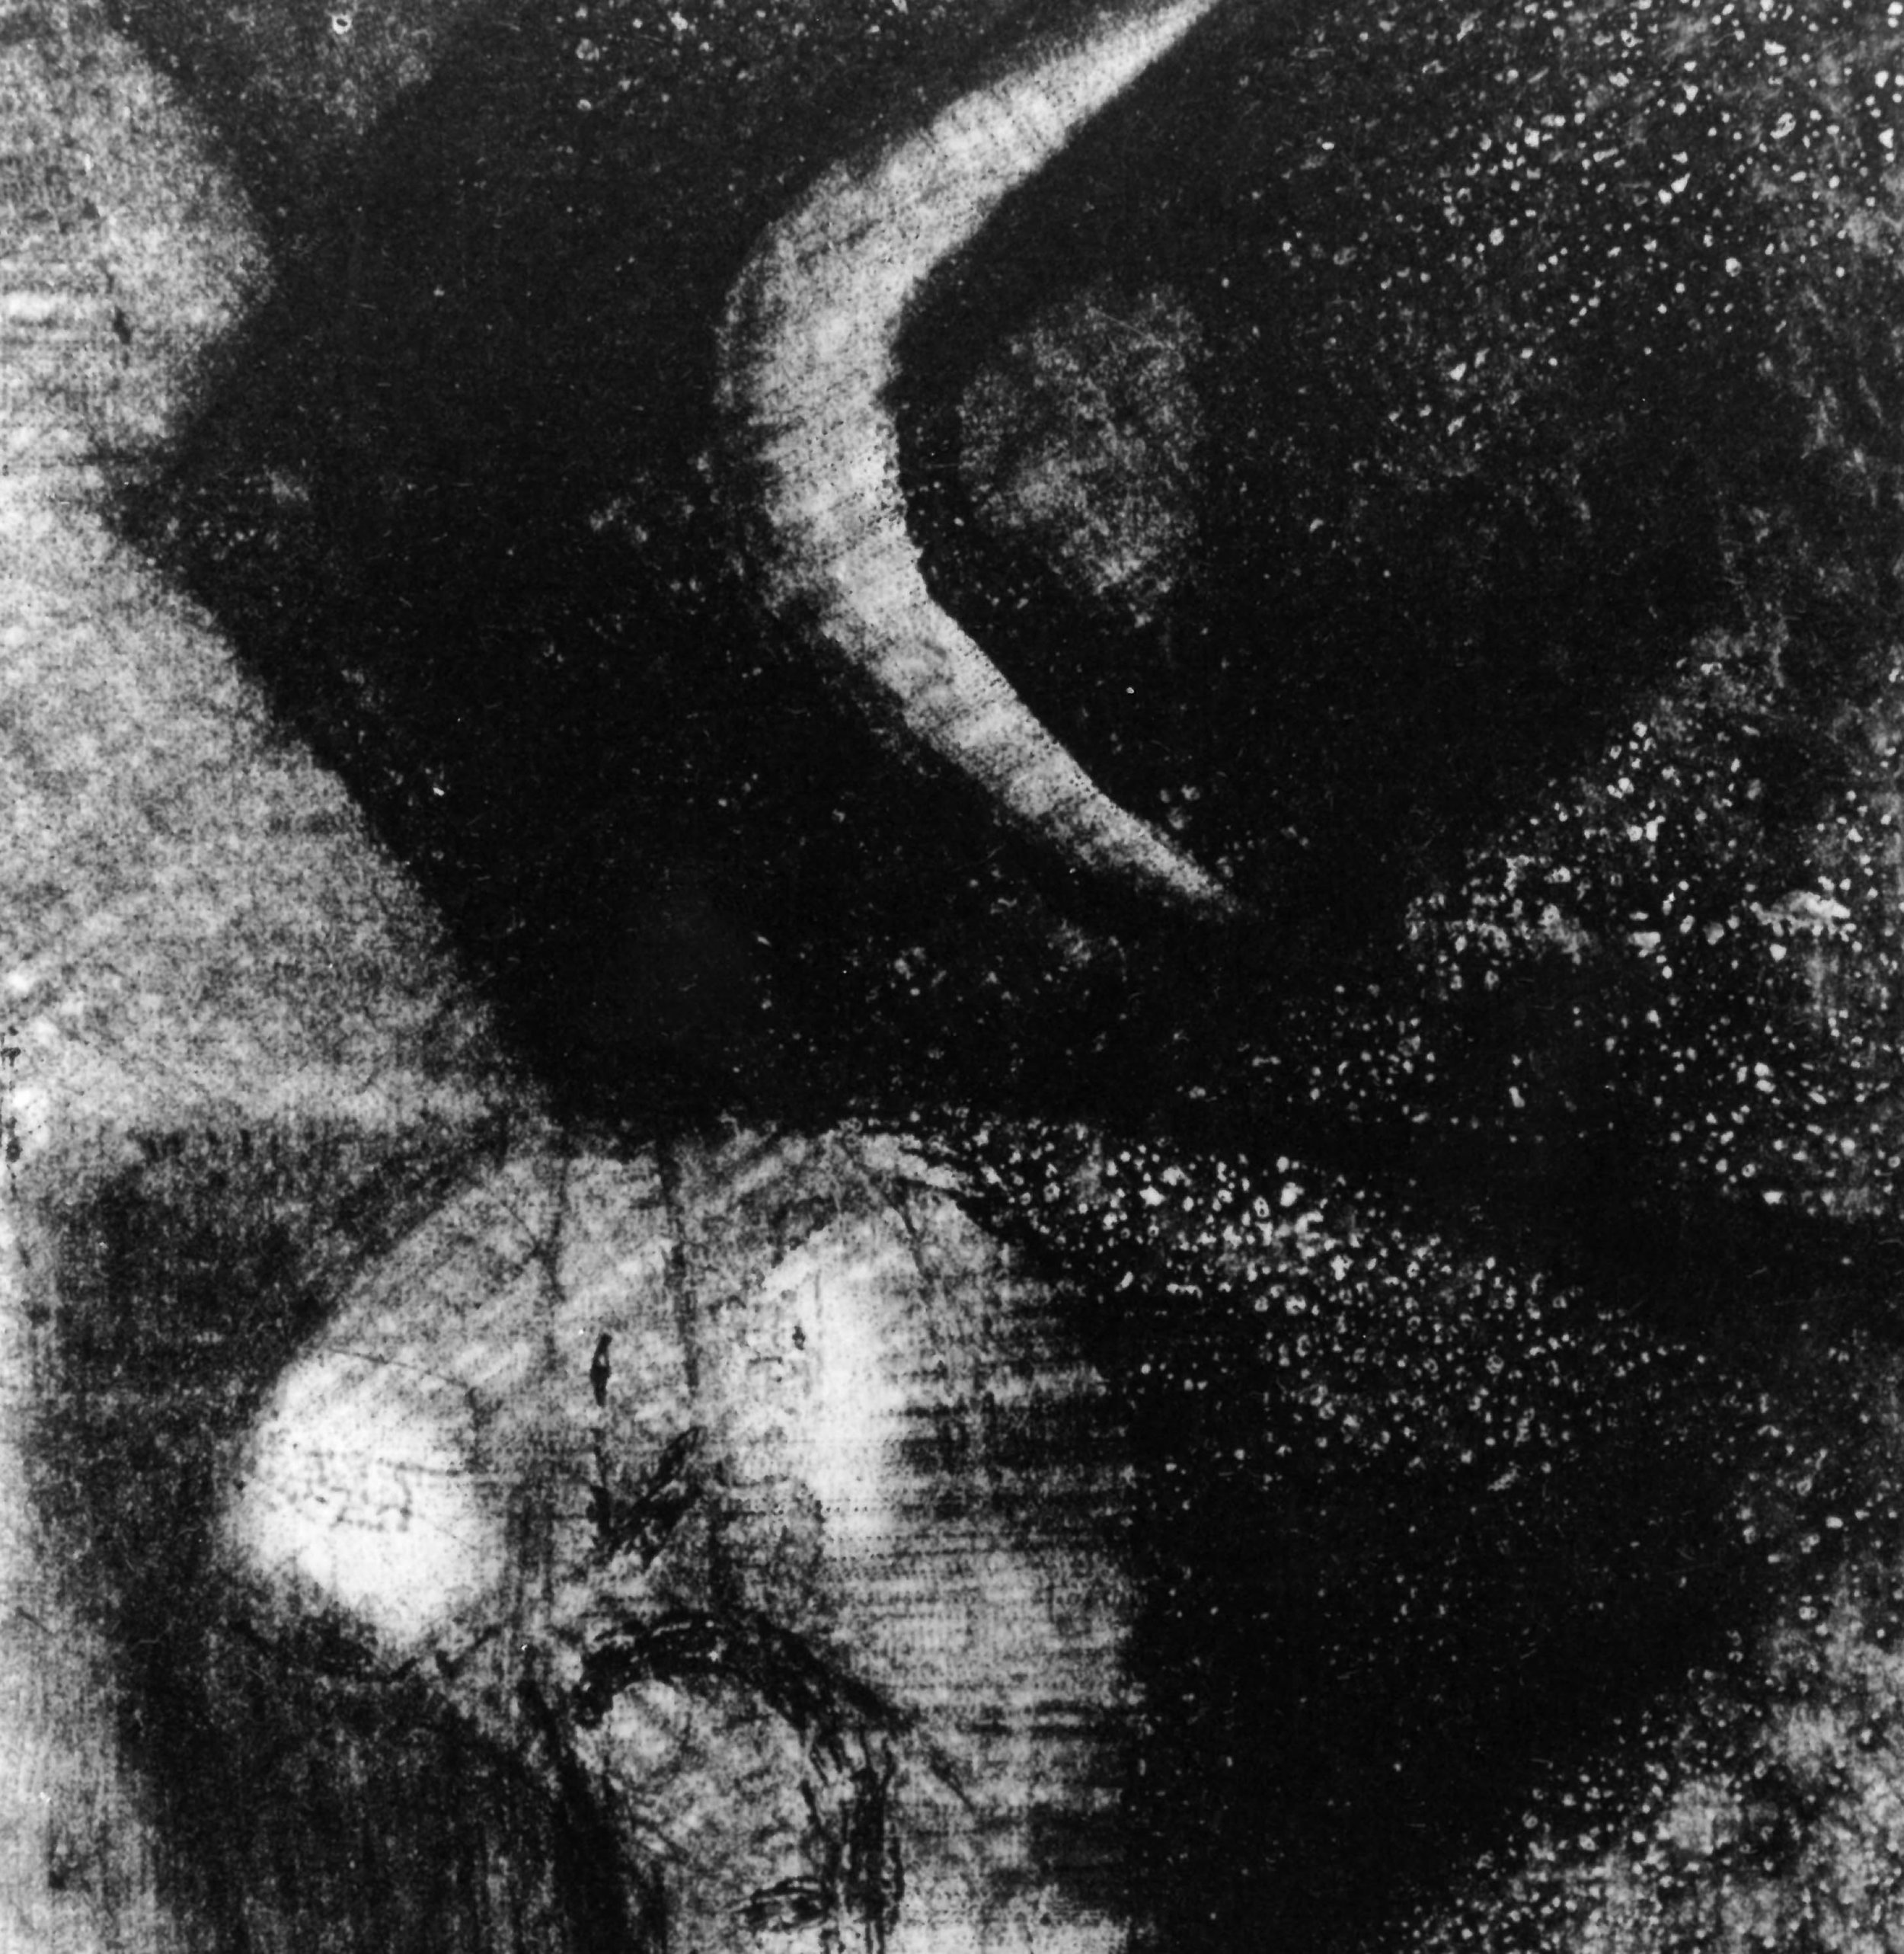 Franz Kempf, 'Blessing of the Moon,' 1992, etching, aquatint, drypoint, 8 x 7cm